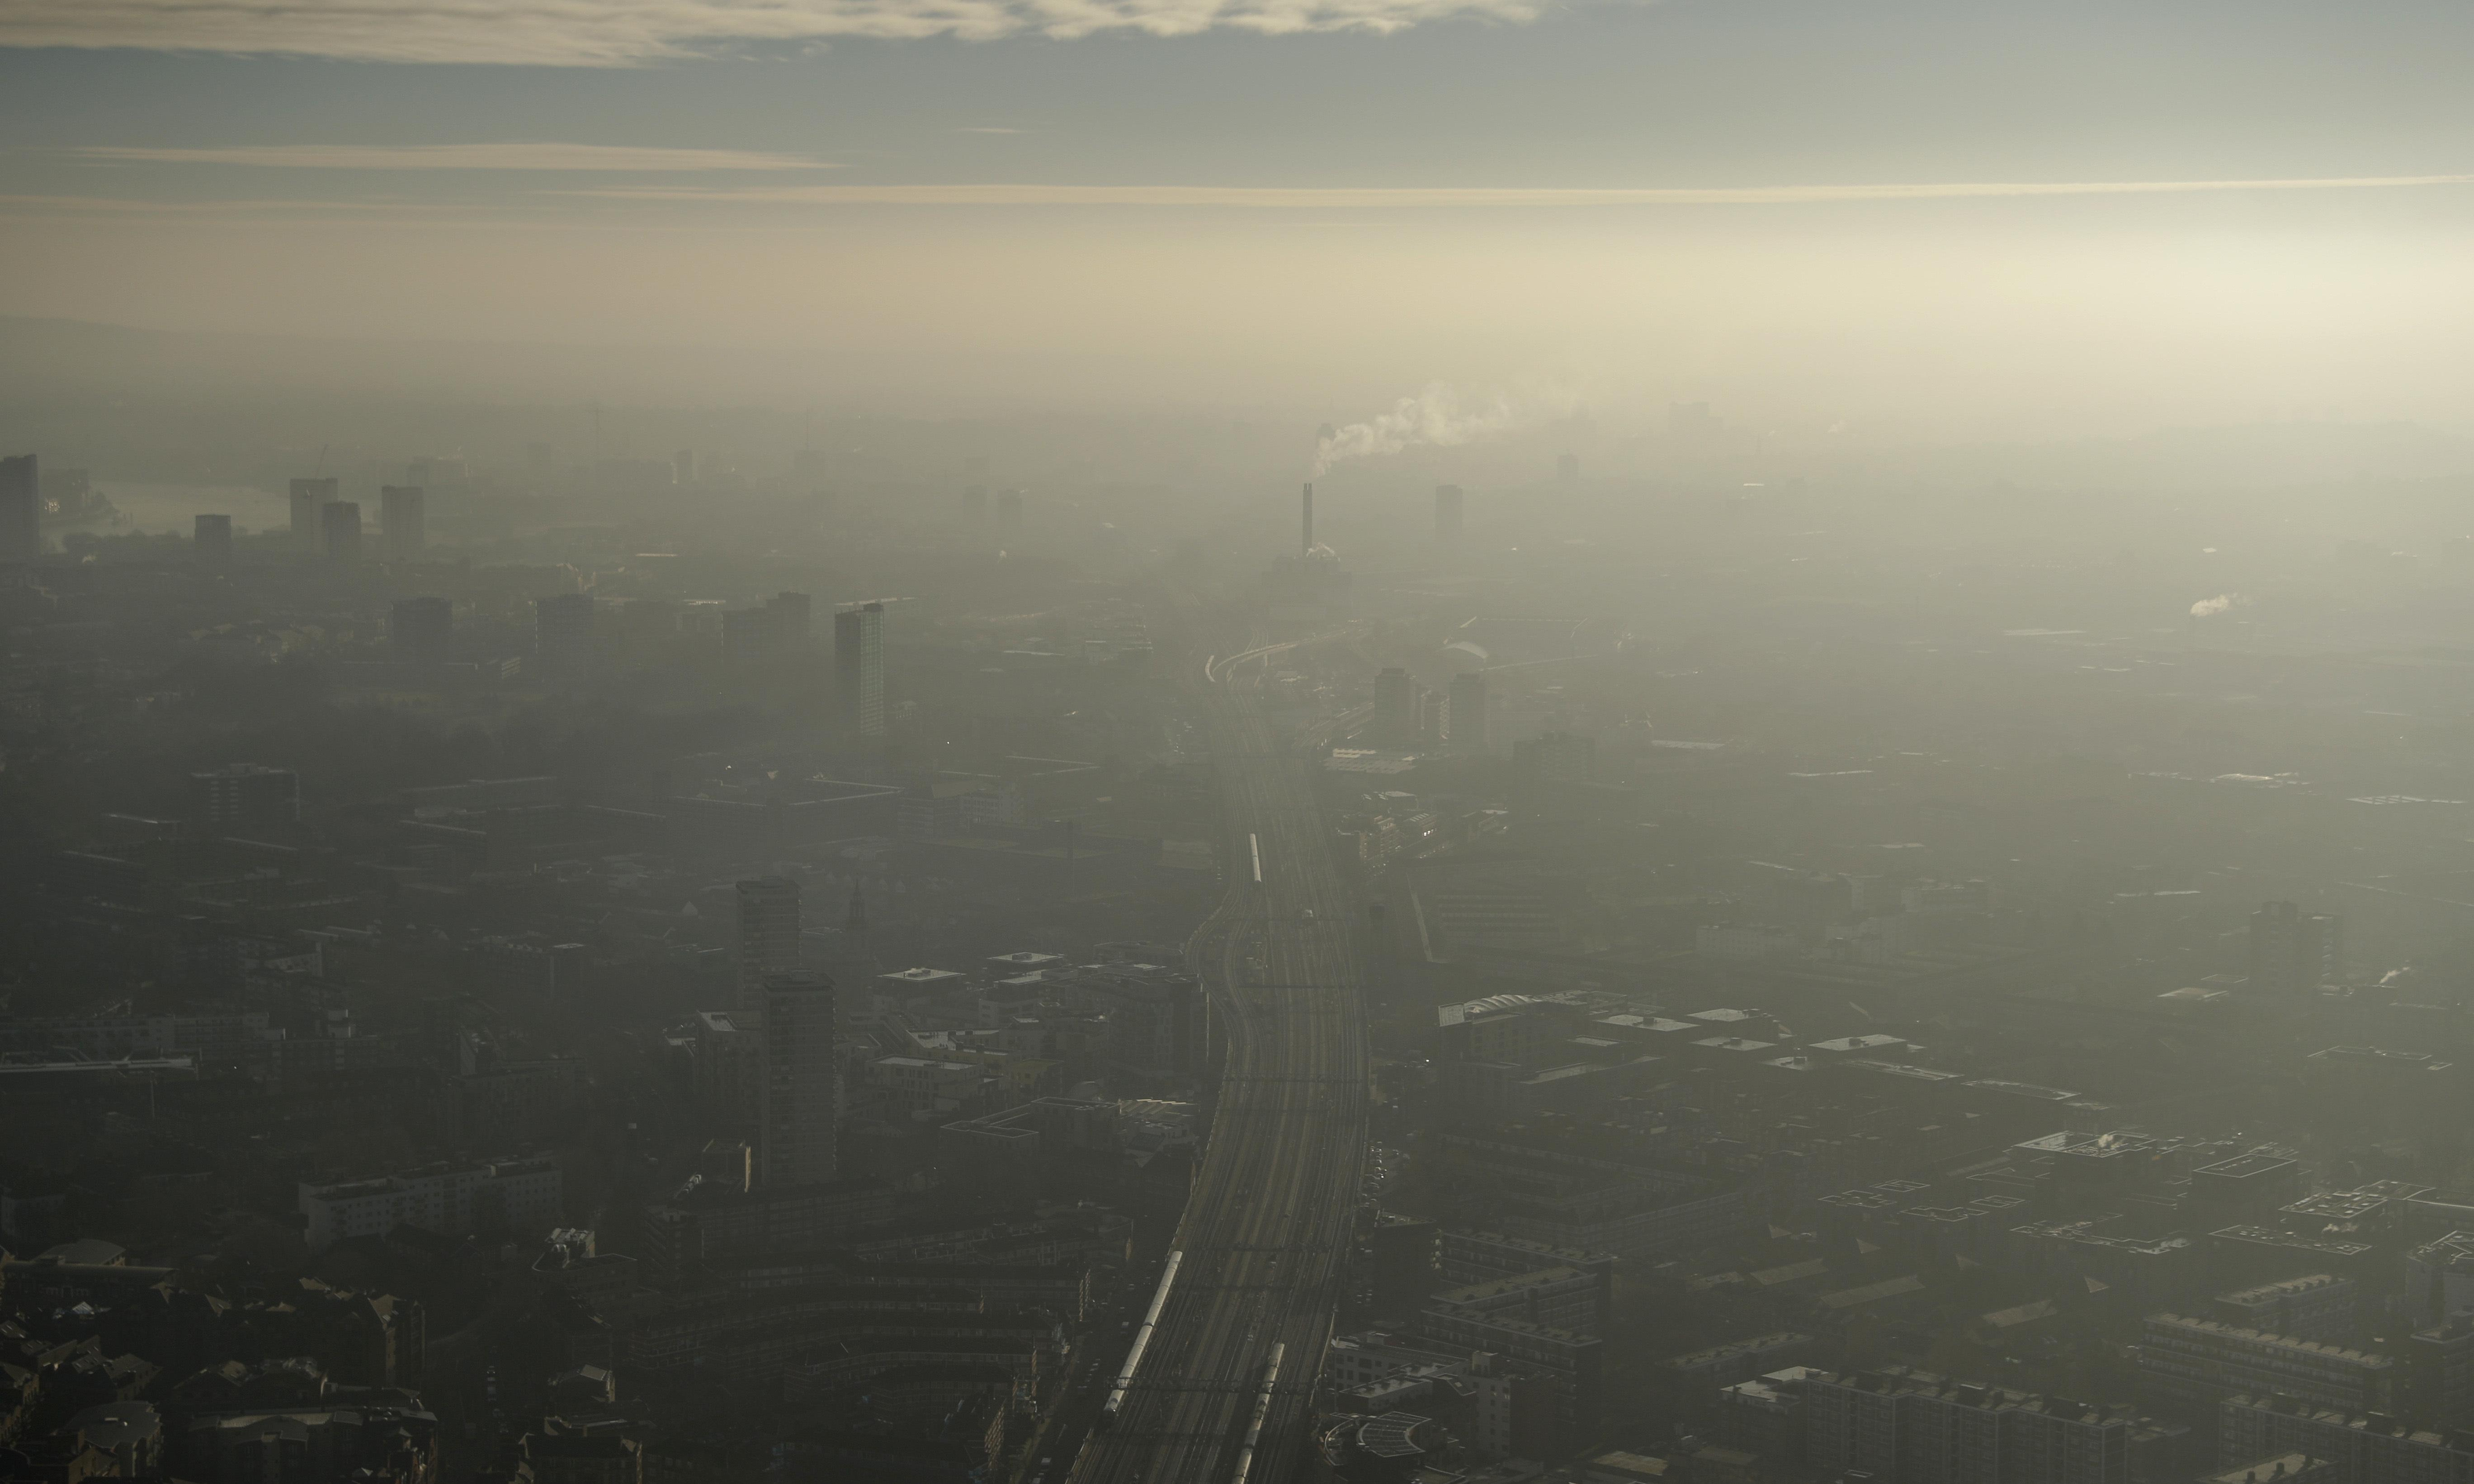 Air pollution linked to greater risk of mouth cancer, finds study